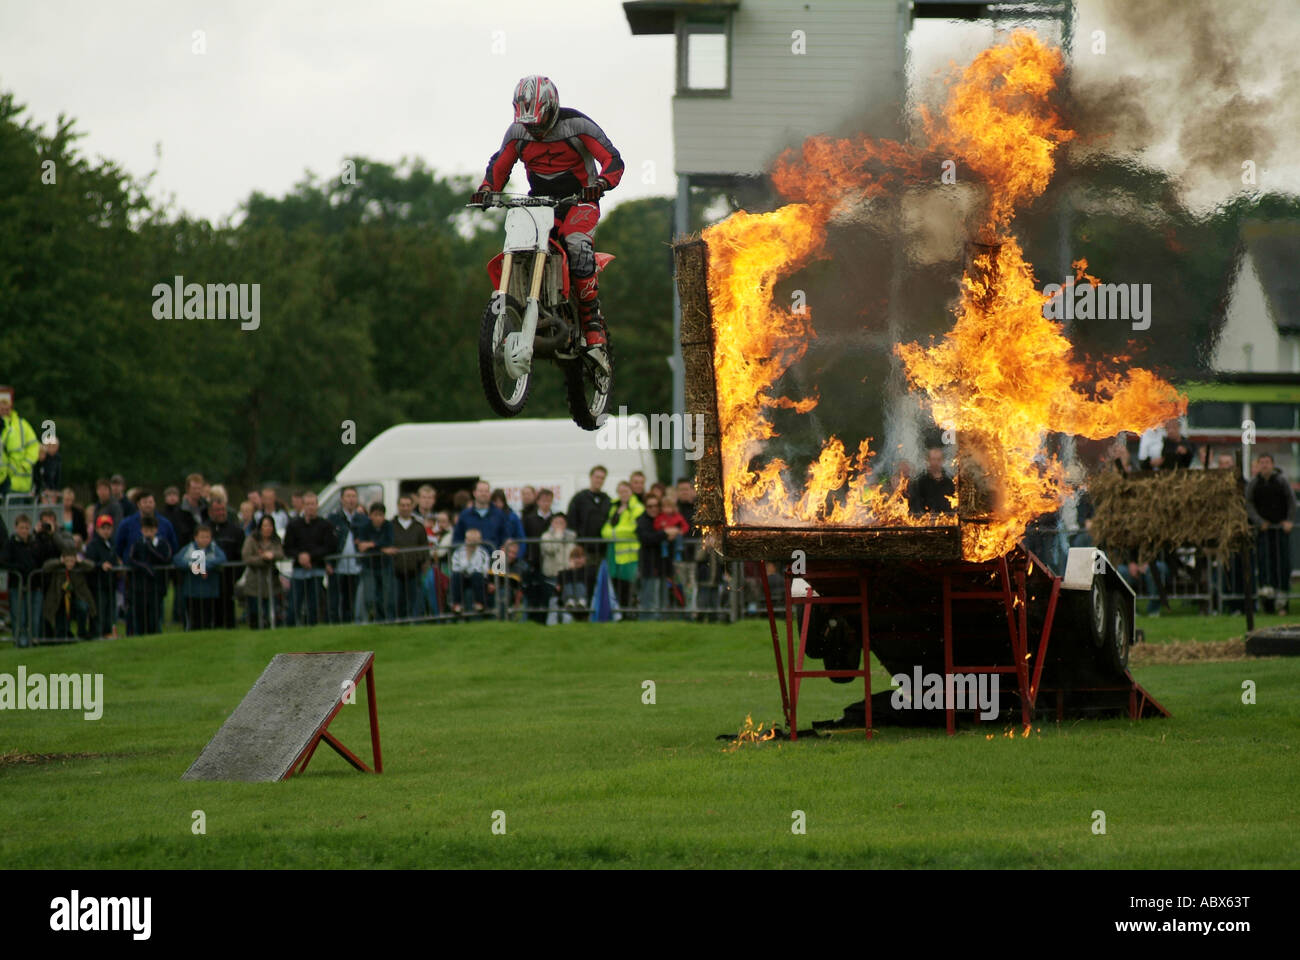 stunt, show, motorcycle, jump, jumping, through, fire, flames, smoke, heat, evil, knevil, ramp, - Stock Image